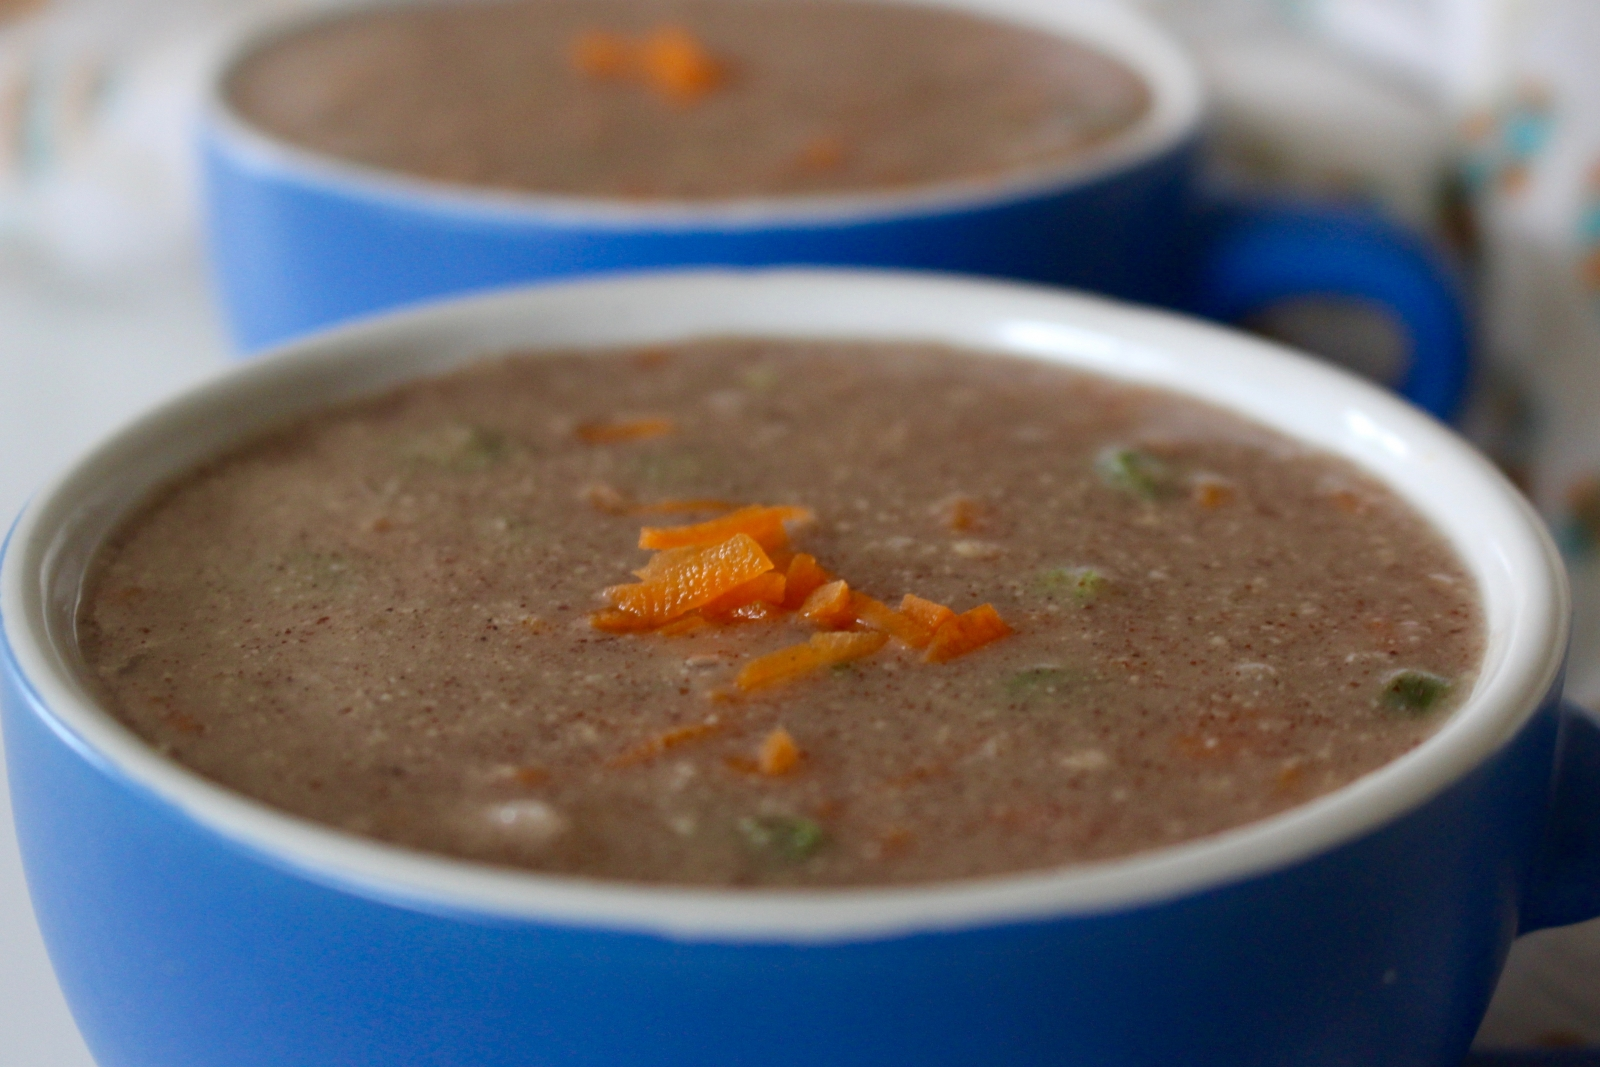 Ragi Badam Soup Recipe - Finger Millet Almond Soup With Vegetables